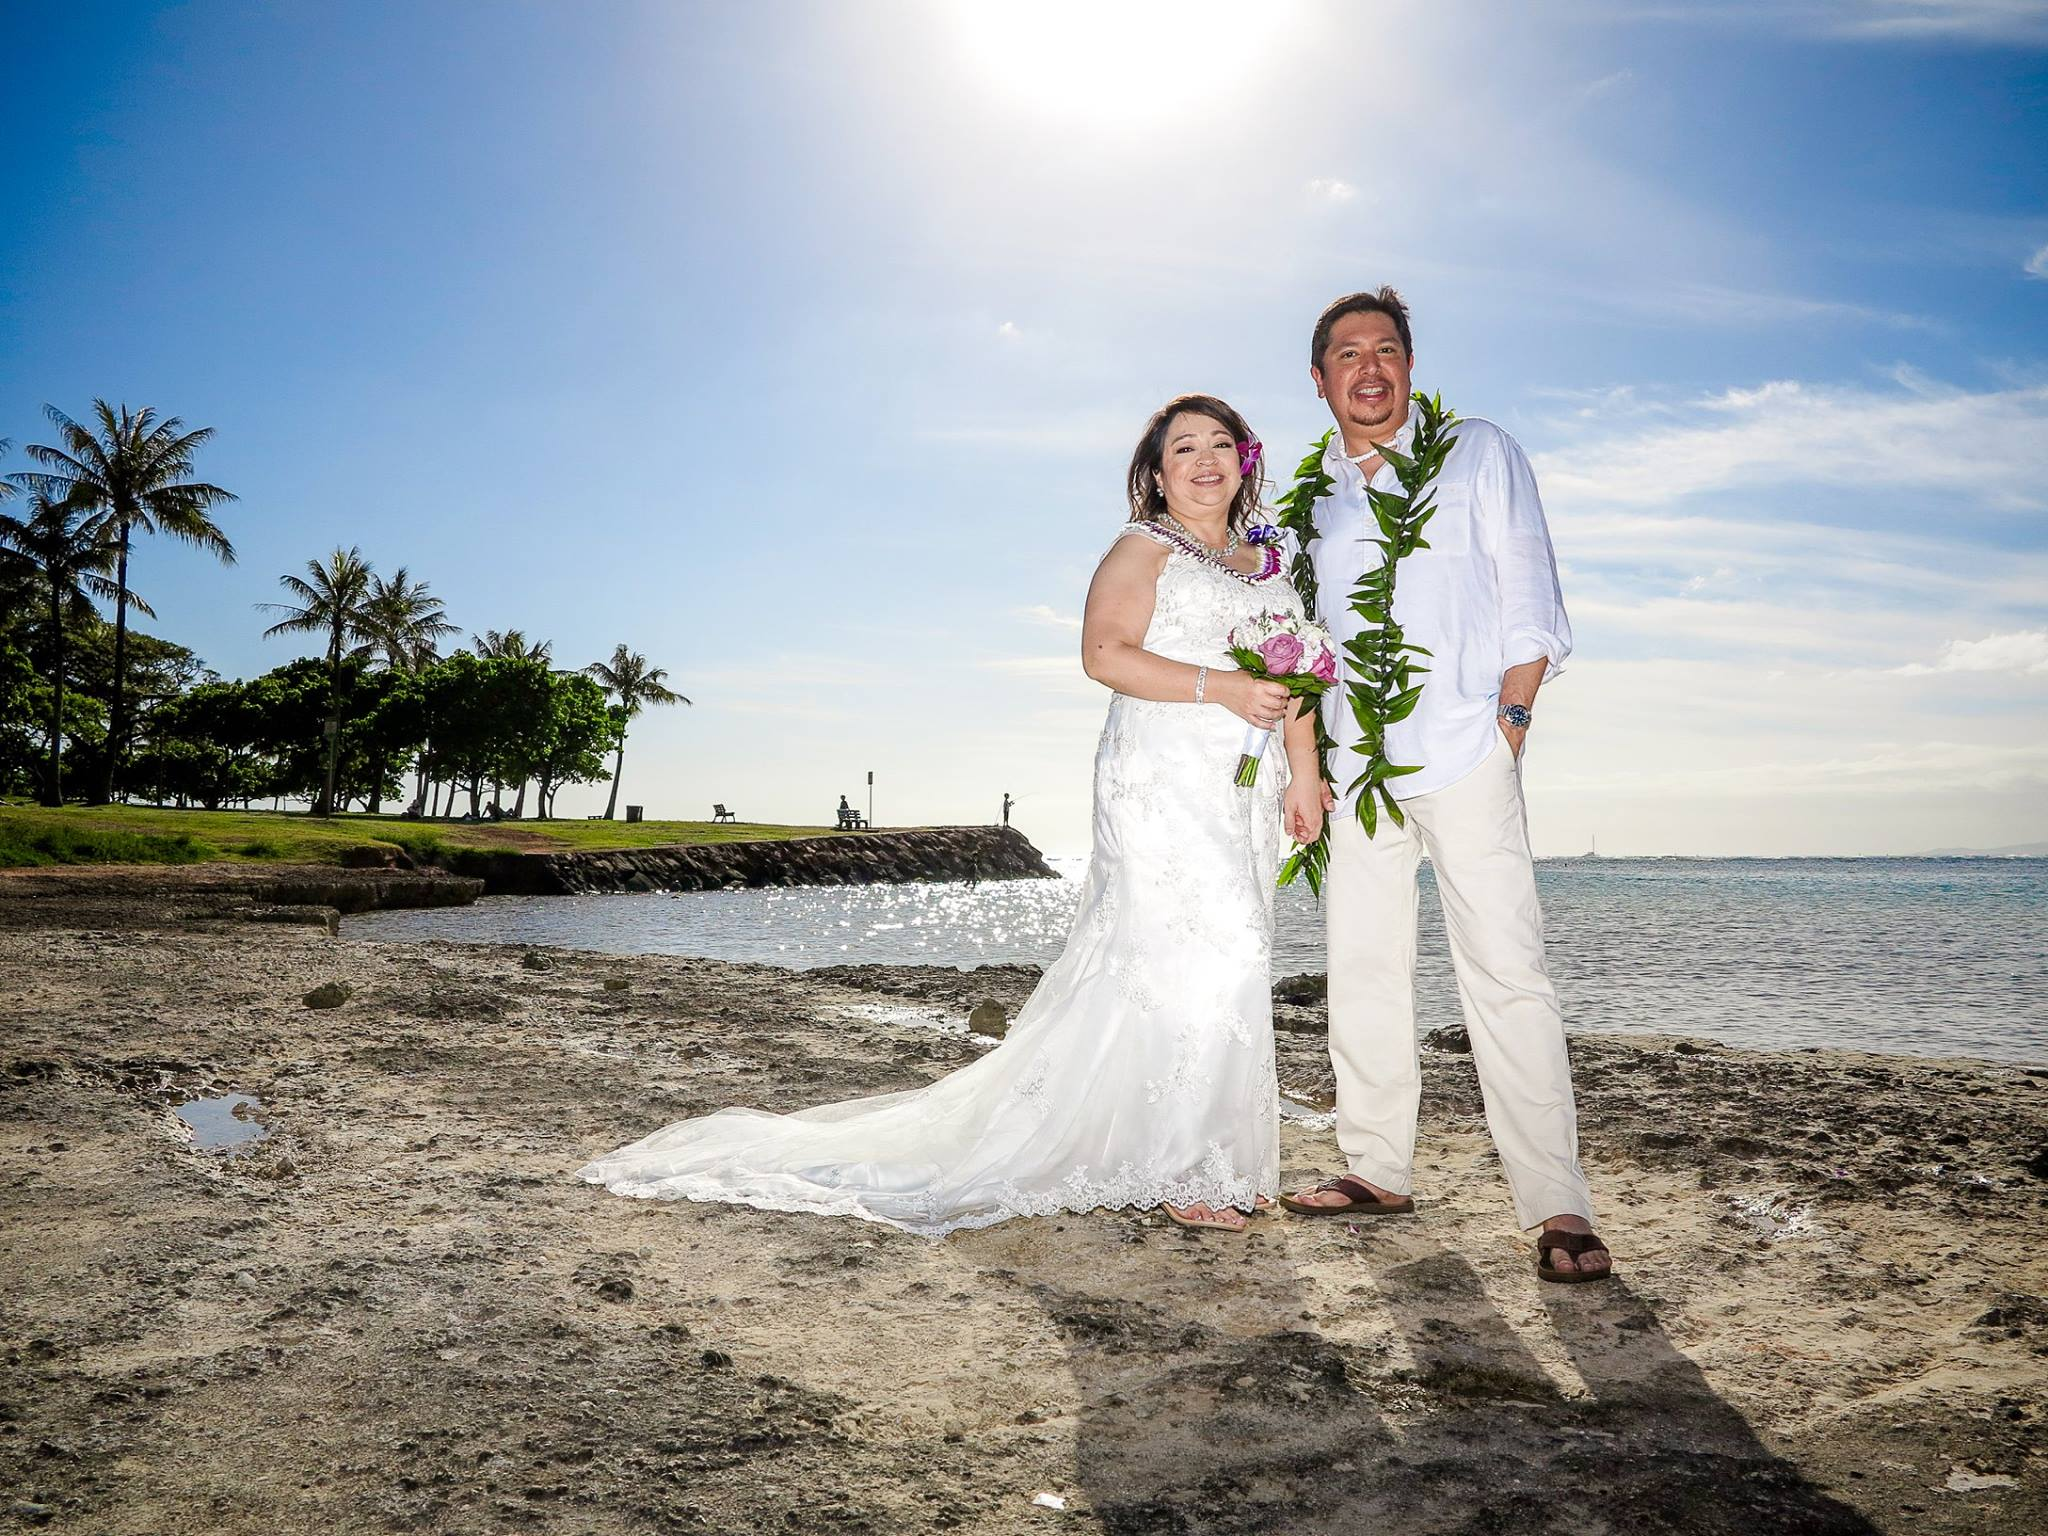 Hawaii wedding packages 2017 my table of contents page hawaii magic island wedding 1024x768 hawaii wedding packages 2017 my table of junglespirit Choice Image